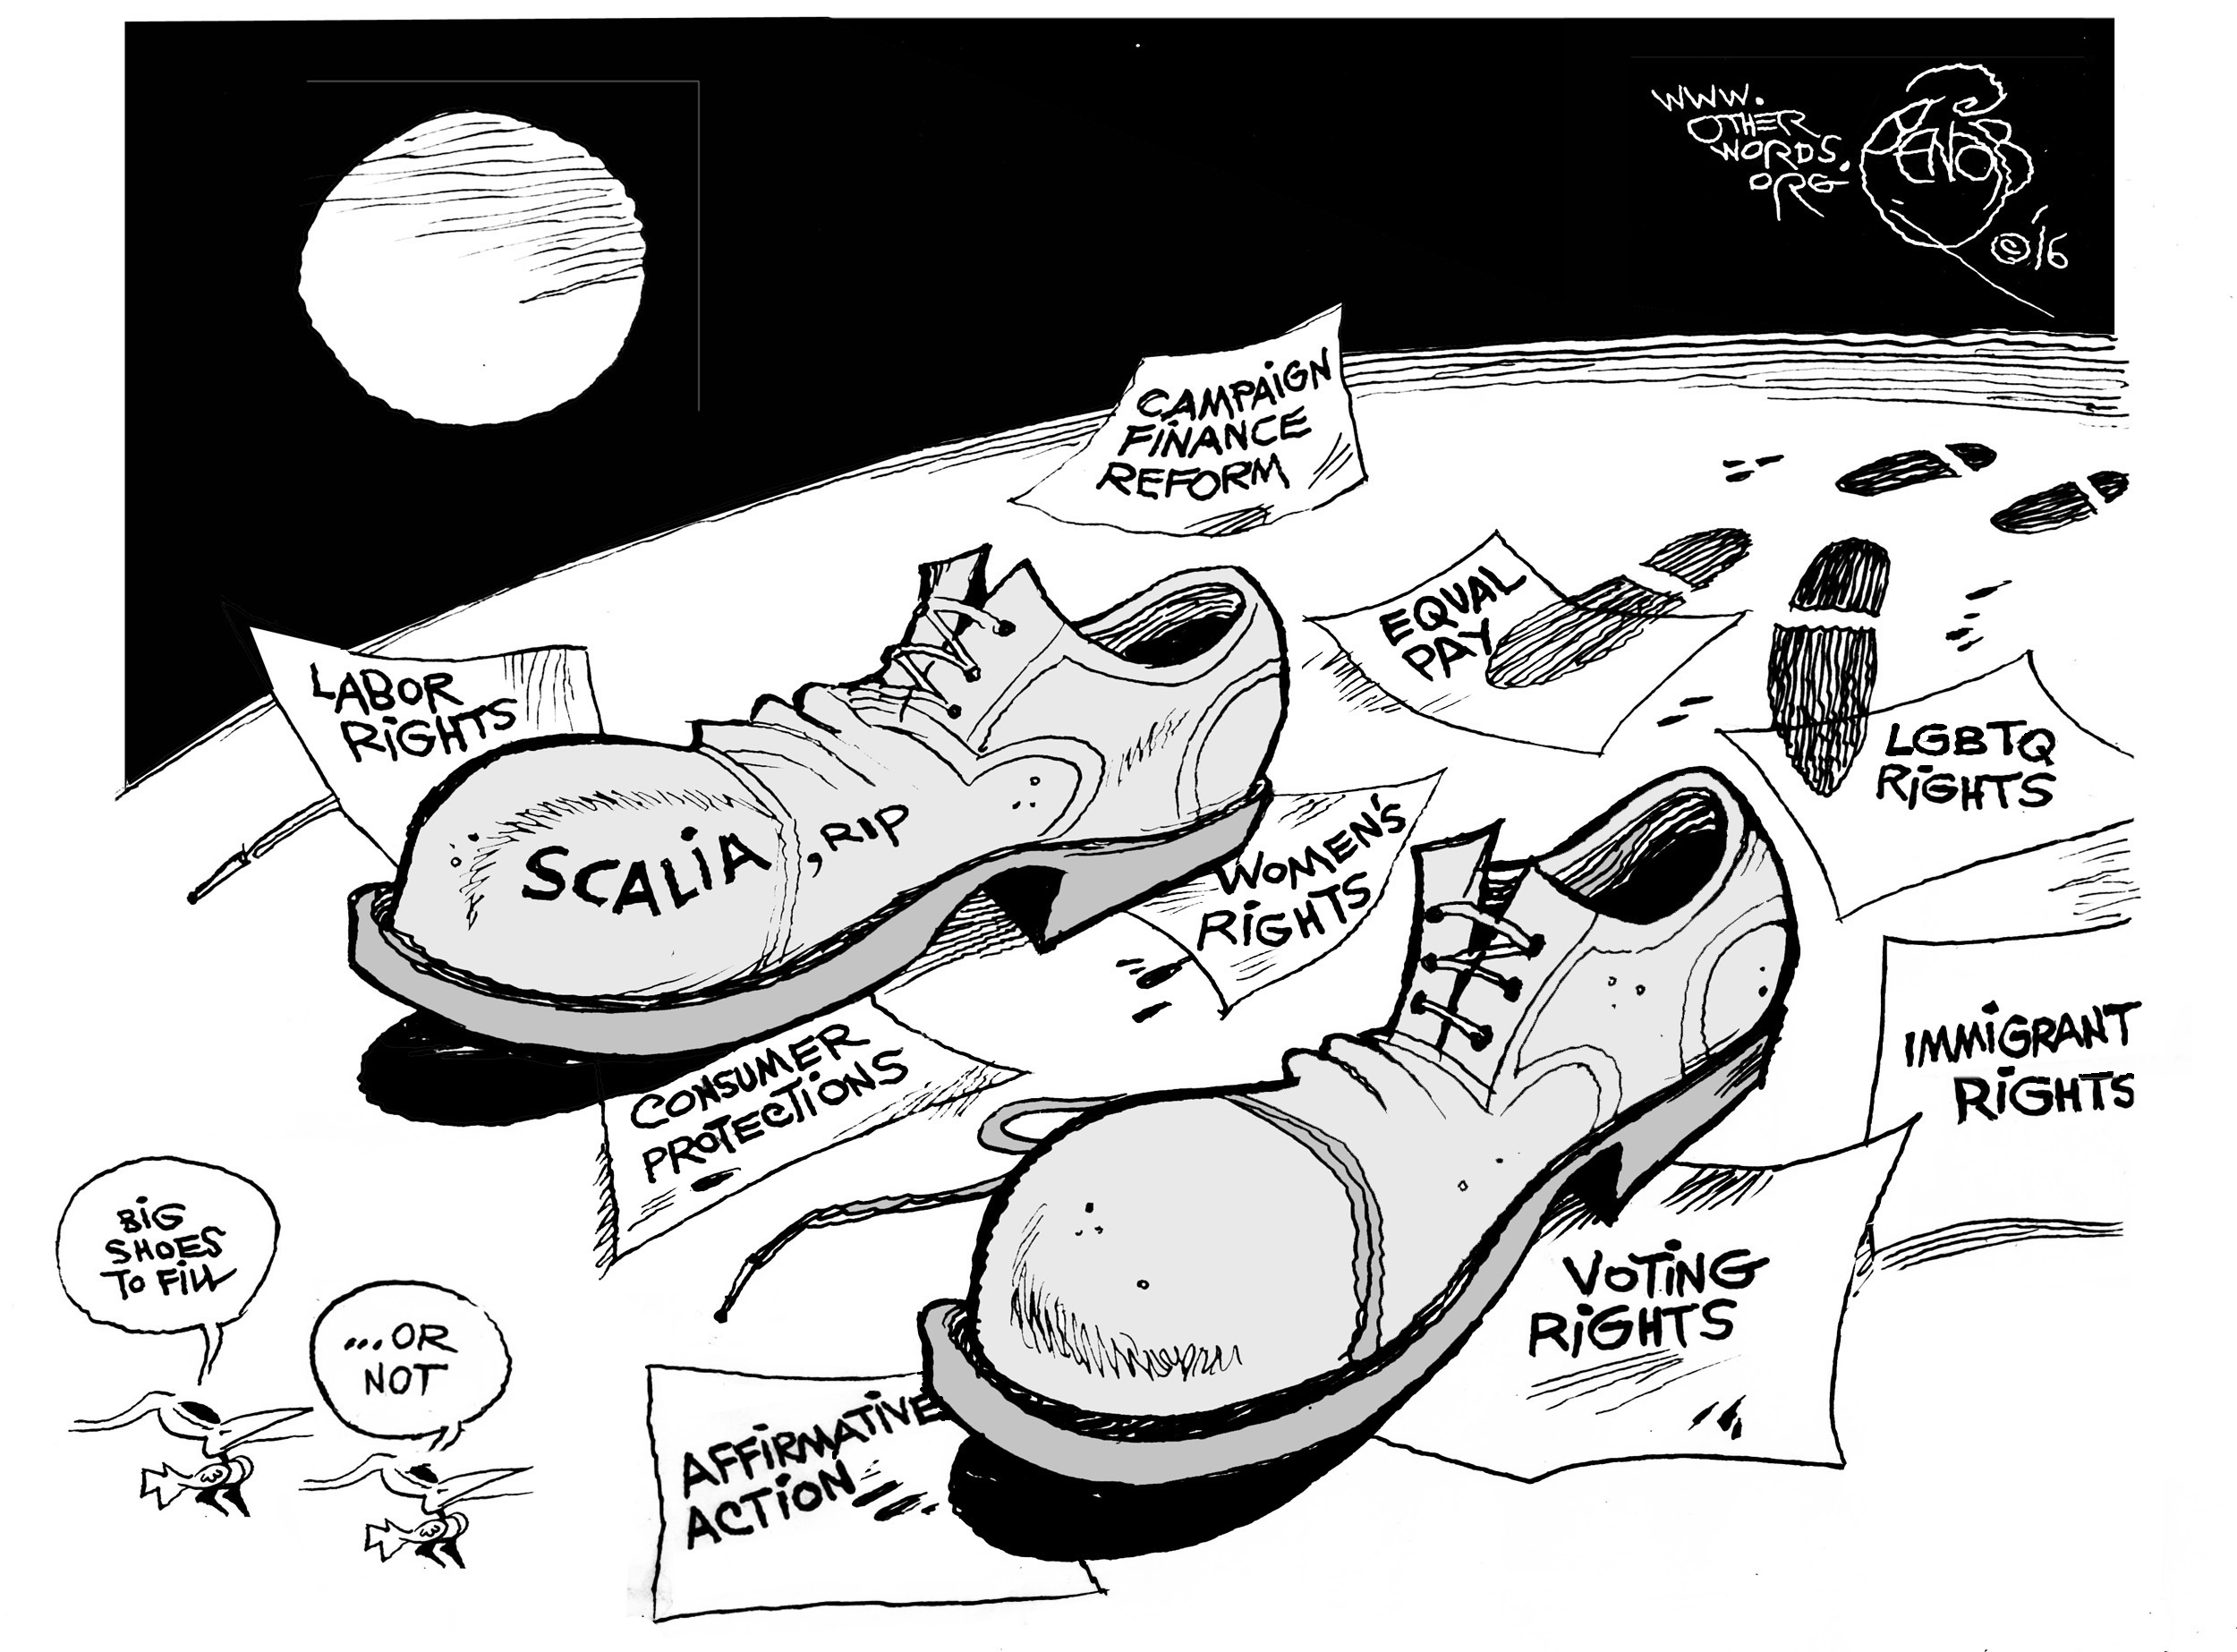 Scalia's Big Shoes